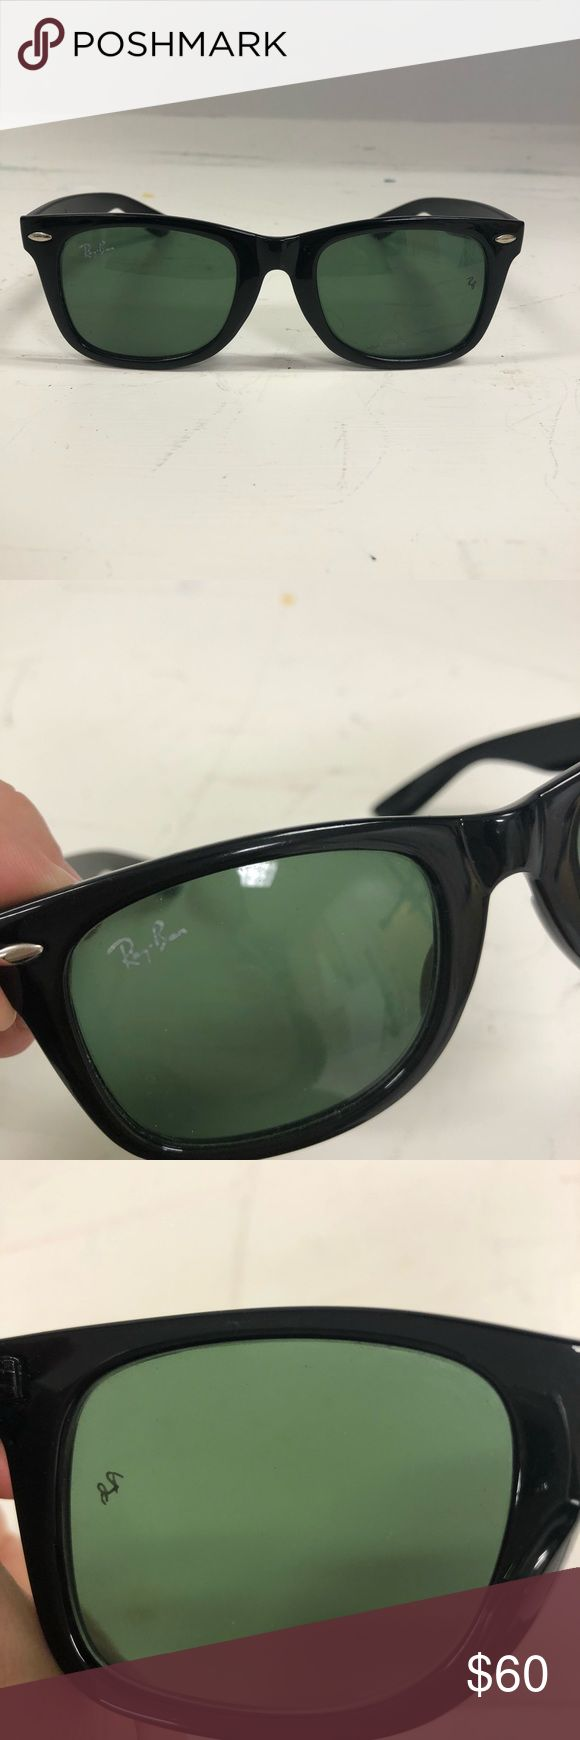 Ray Ban Wayfarer Unisex Ray Ban unisex Wayfarer sunglasses. Solid black, with black tinted lenses. Barely worn. Does not come with a case. Ray-Ban Accessories Sunglasses